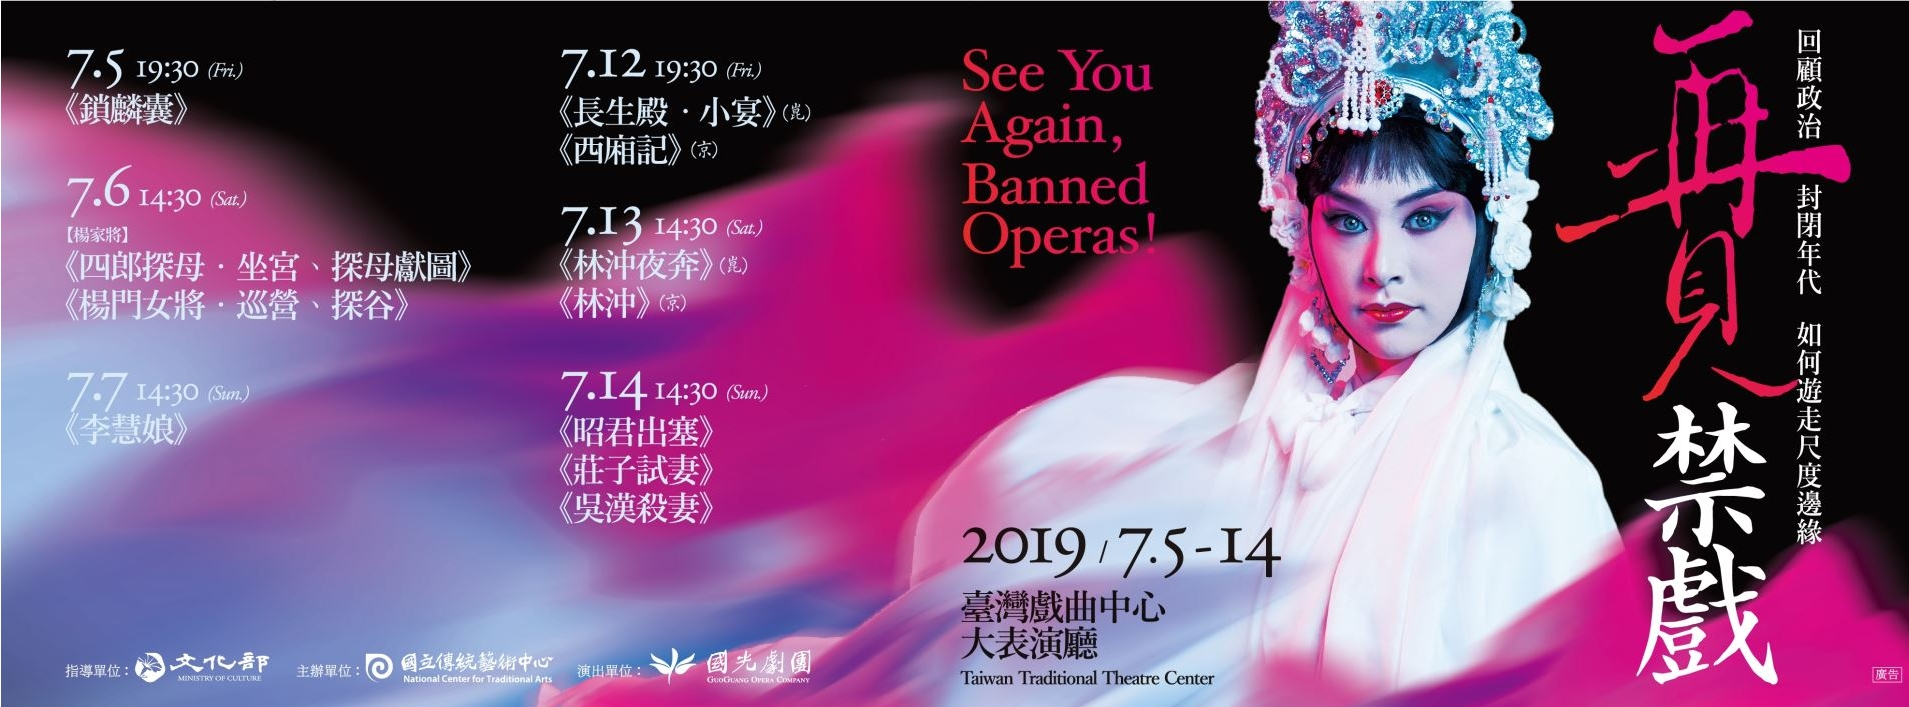 See You Again,Banned Operas![另開新視窗]